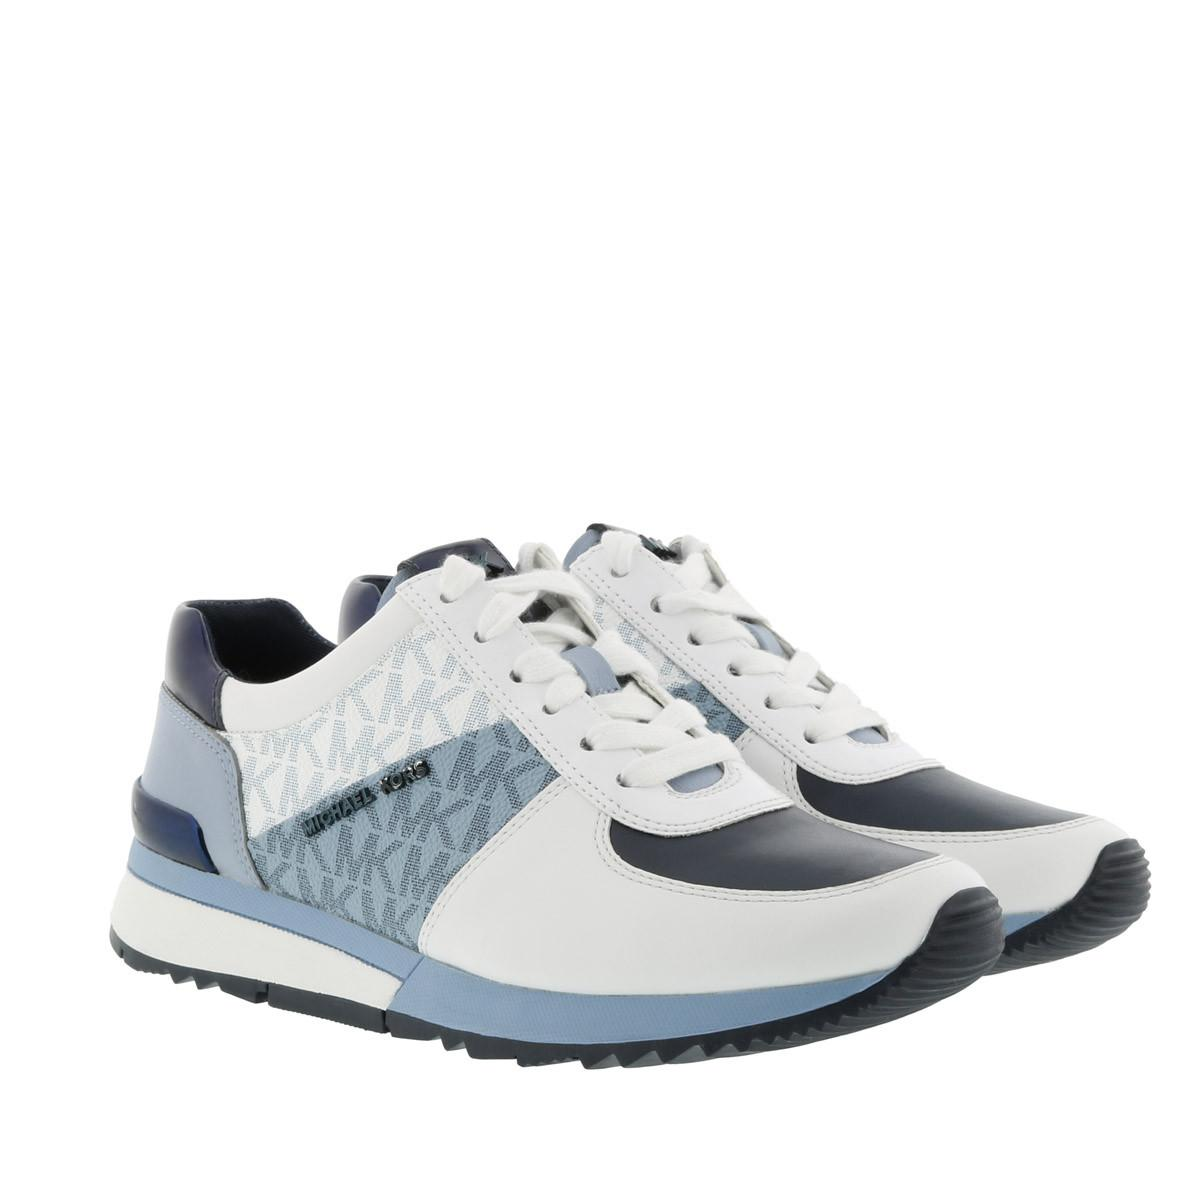 MICHAEL lFcSG63nDZ ALLIE TRAINER - Trainers - admiral/pale blue/optic white